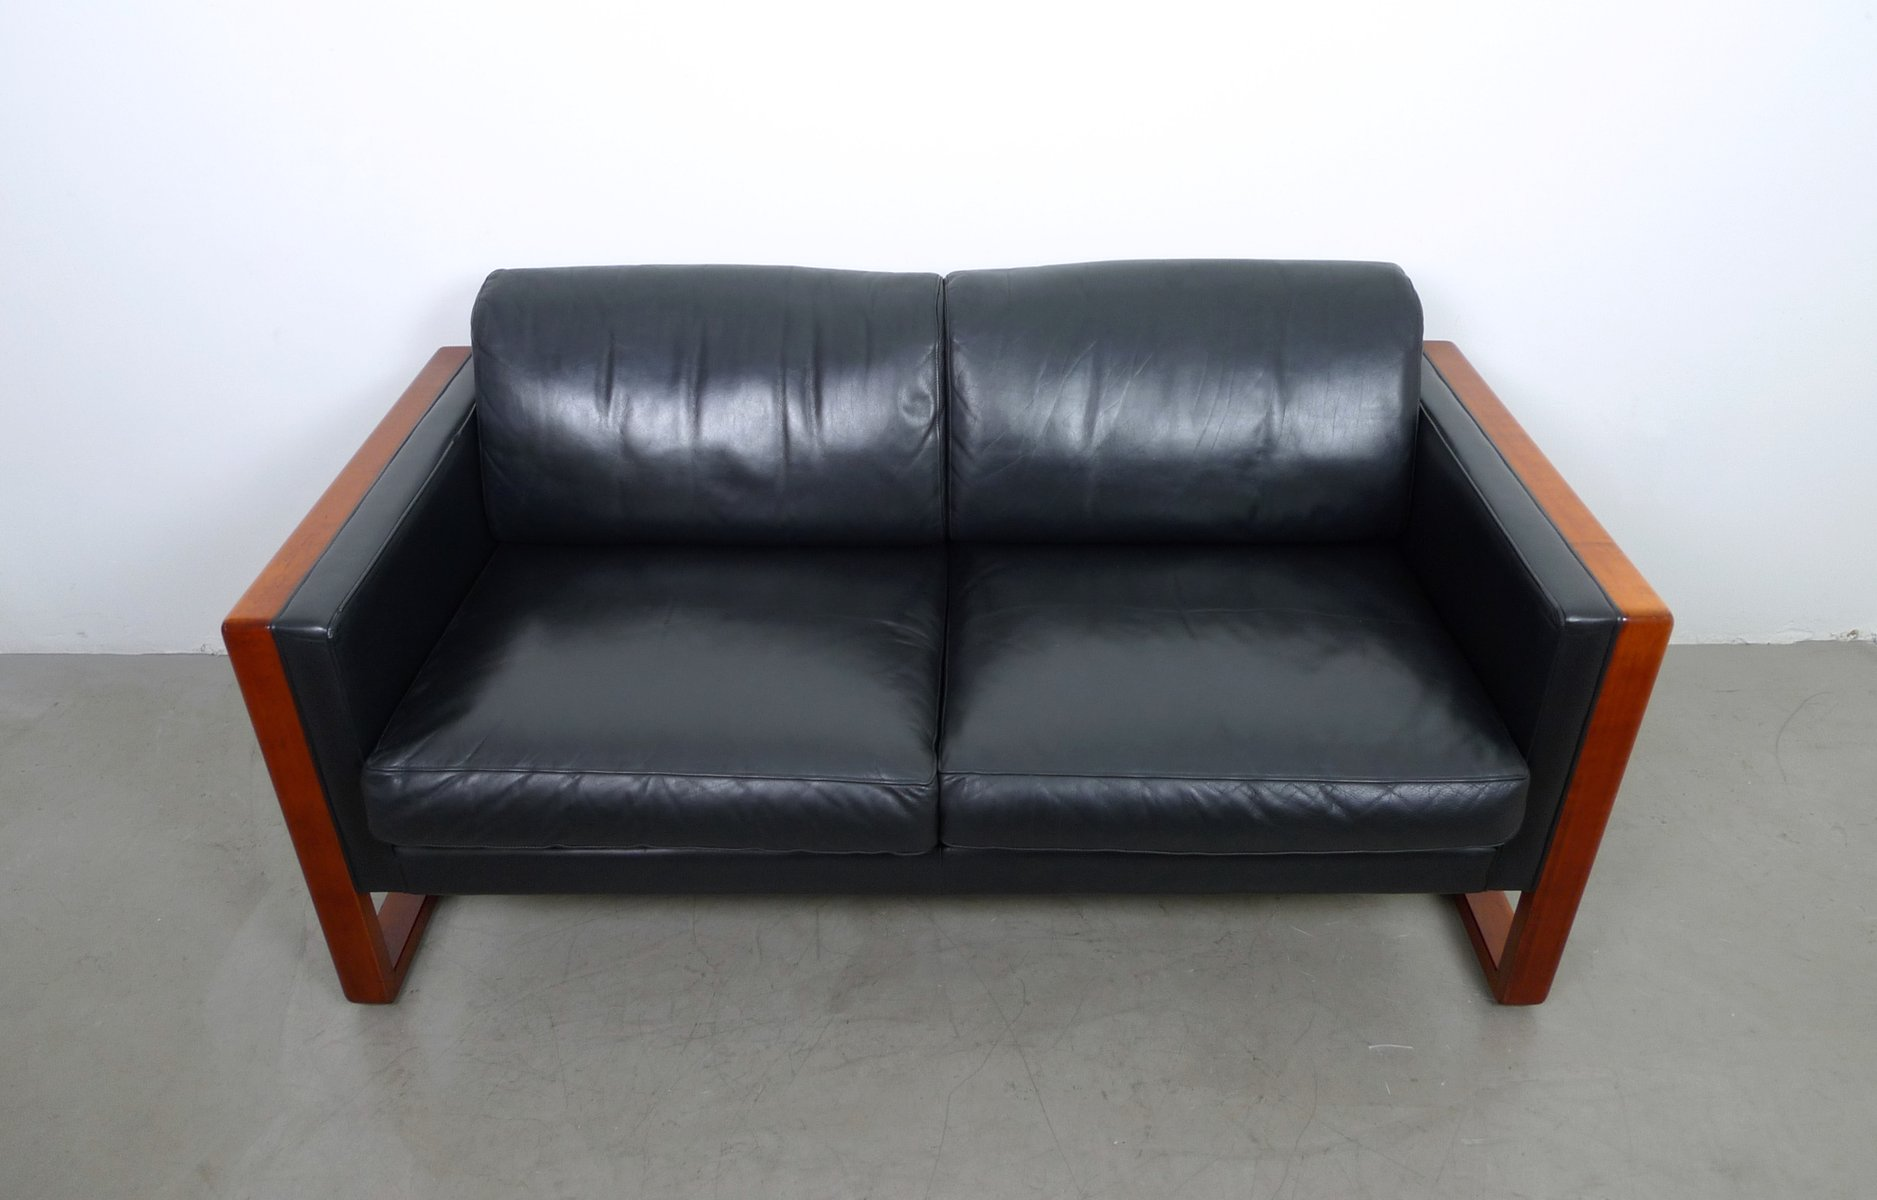 2 Seater Leather Sofa from Walter Knoll 1960s for sale at  : 2 seater leather sofa from walter knoll 1960s 3 from www.pamono.co.uk size 1877 x 1200 jpeg 90kB